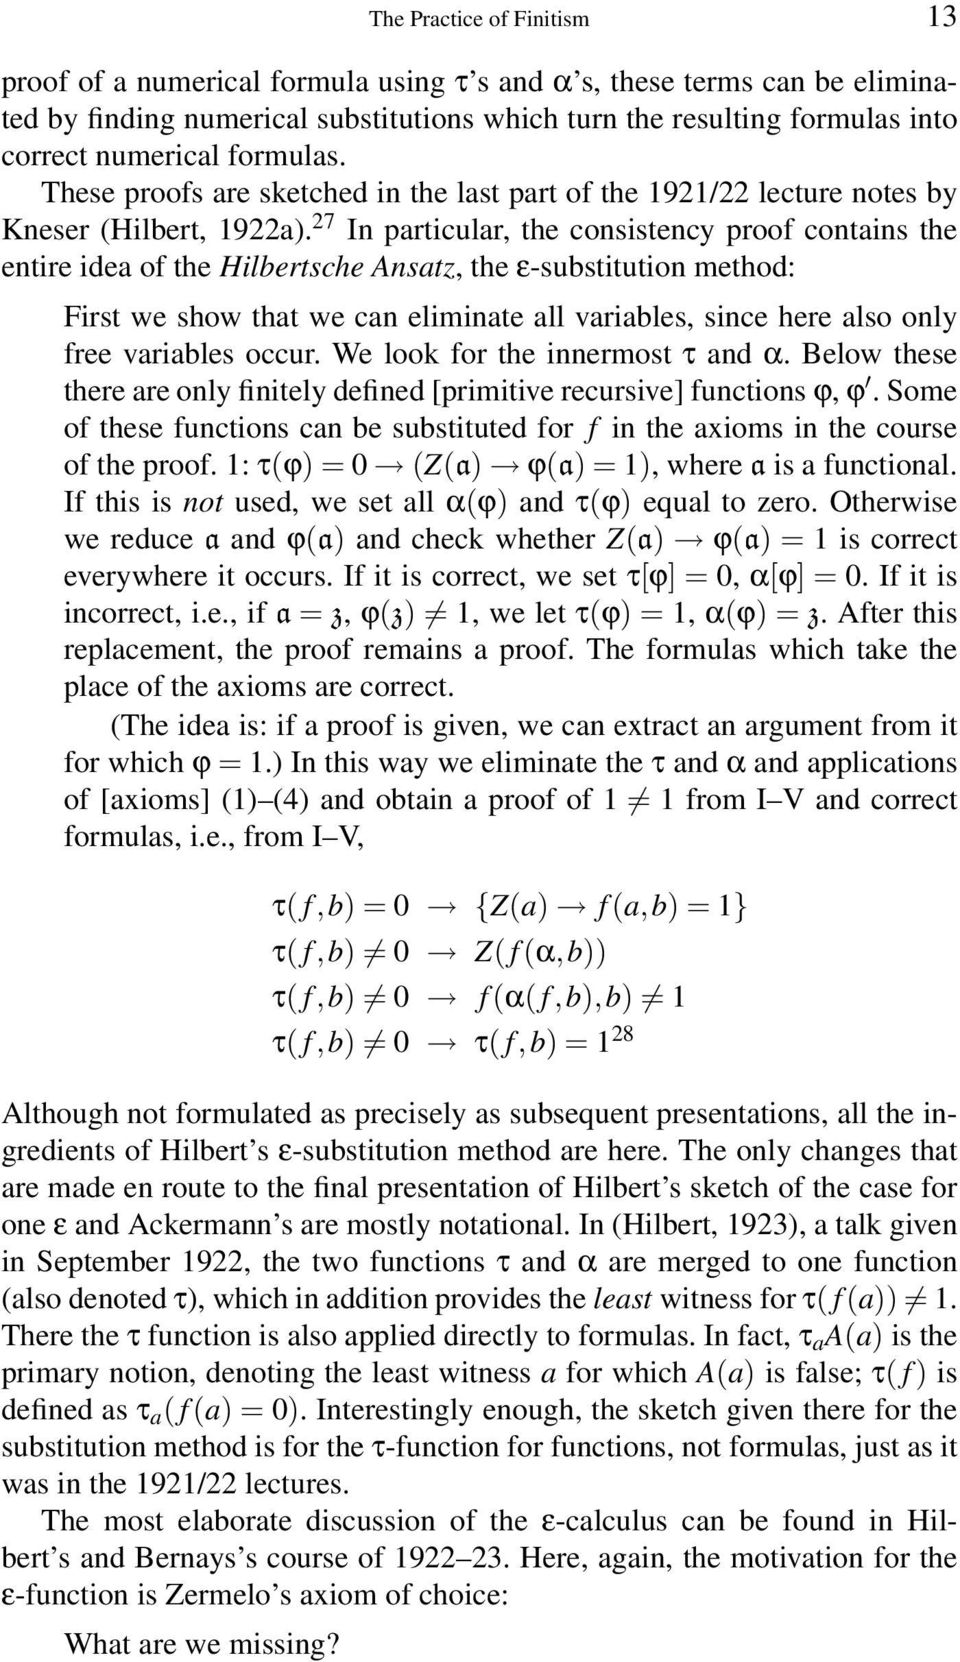 27 In particular, the consistency proof contains the entire idea of the Hilbertsche Ansatz, the ε-substitution method: First we show that we can eliminate all variables, since here also only free